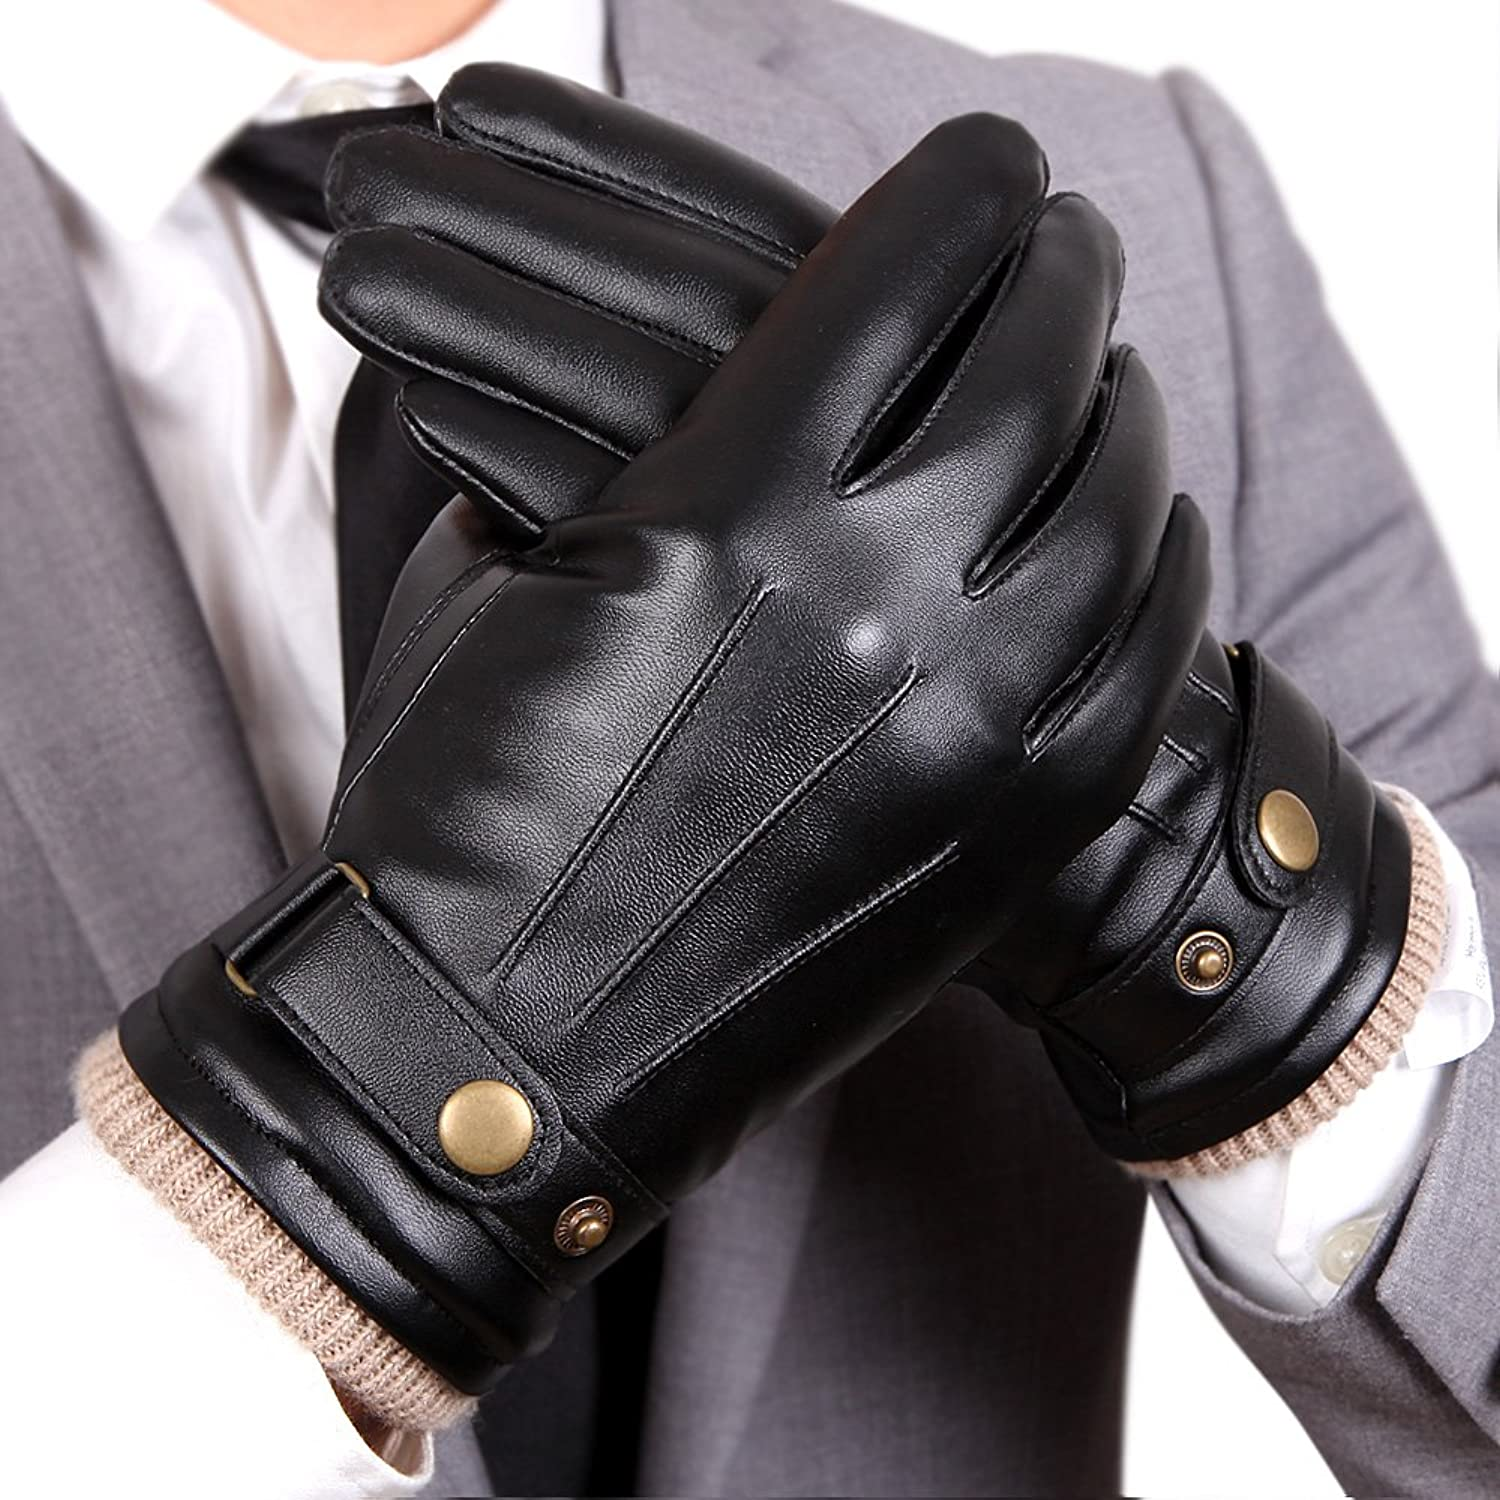 Motorcycle leather gloves amazon - Warmen Mens Touchscreen Texting Winter Pu Faux Leather Gloves Driving Long Fleece Lining Black Wool